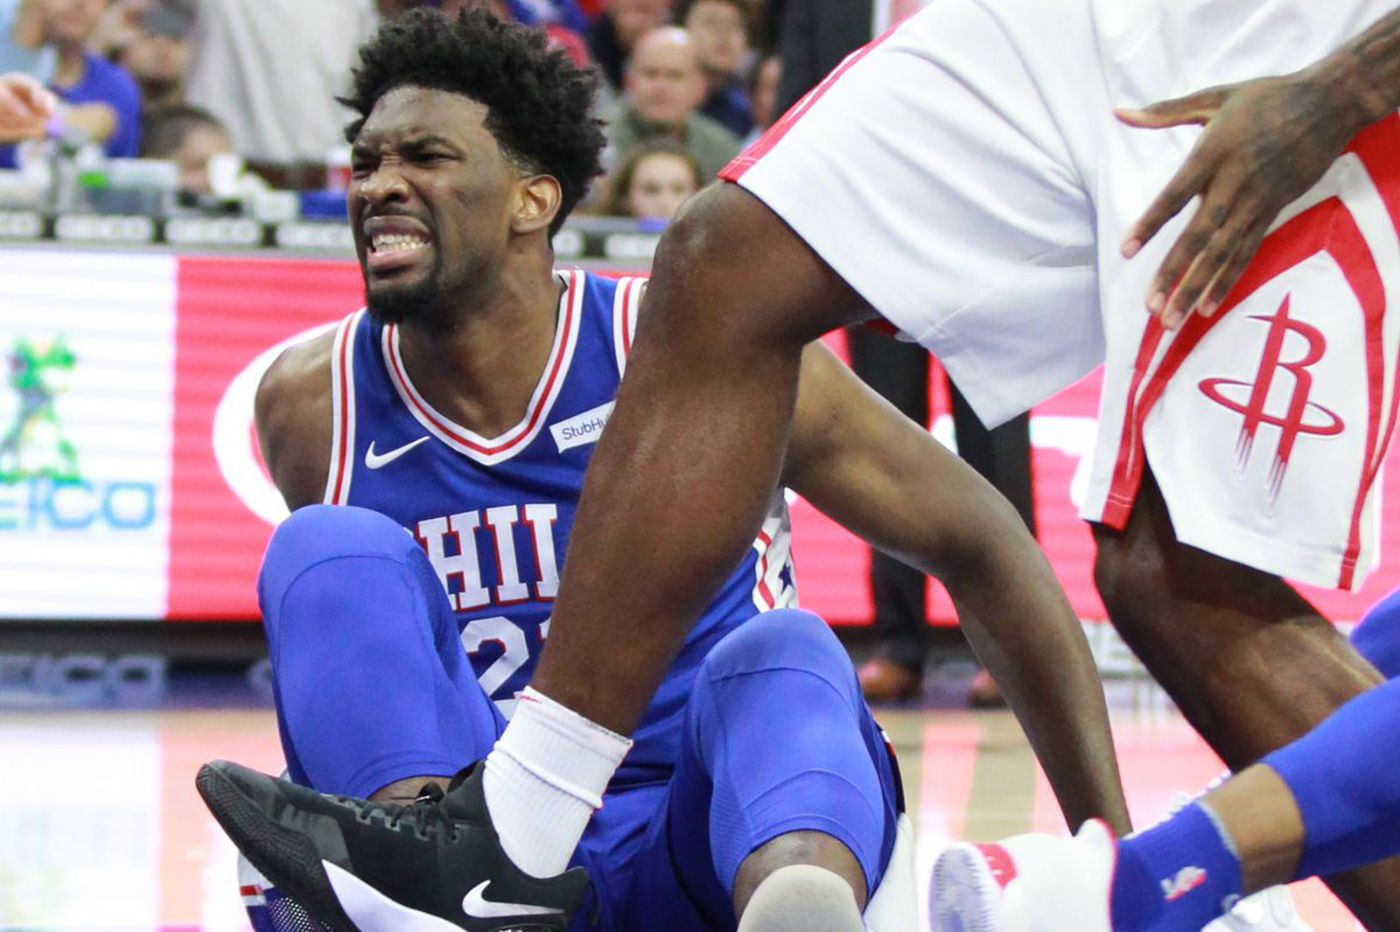 Sixers' Joel Embiid won't play Tuesday night against Sacramento Kings